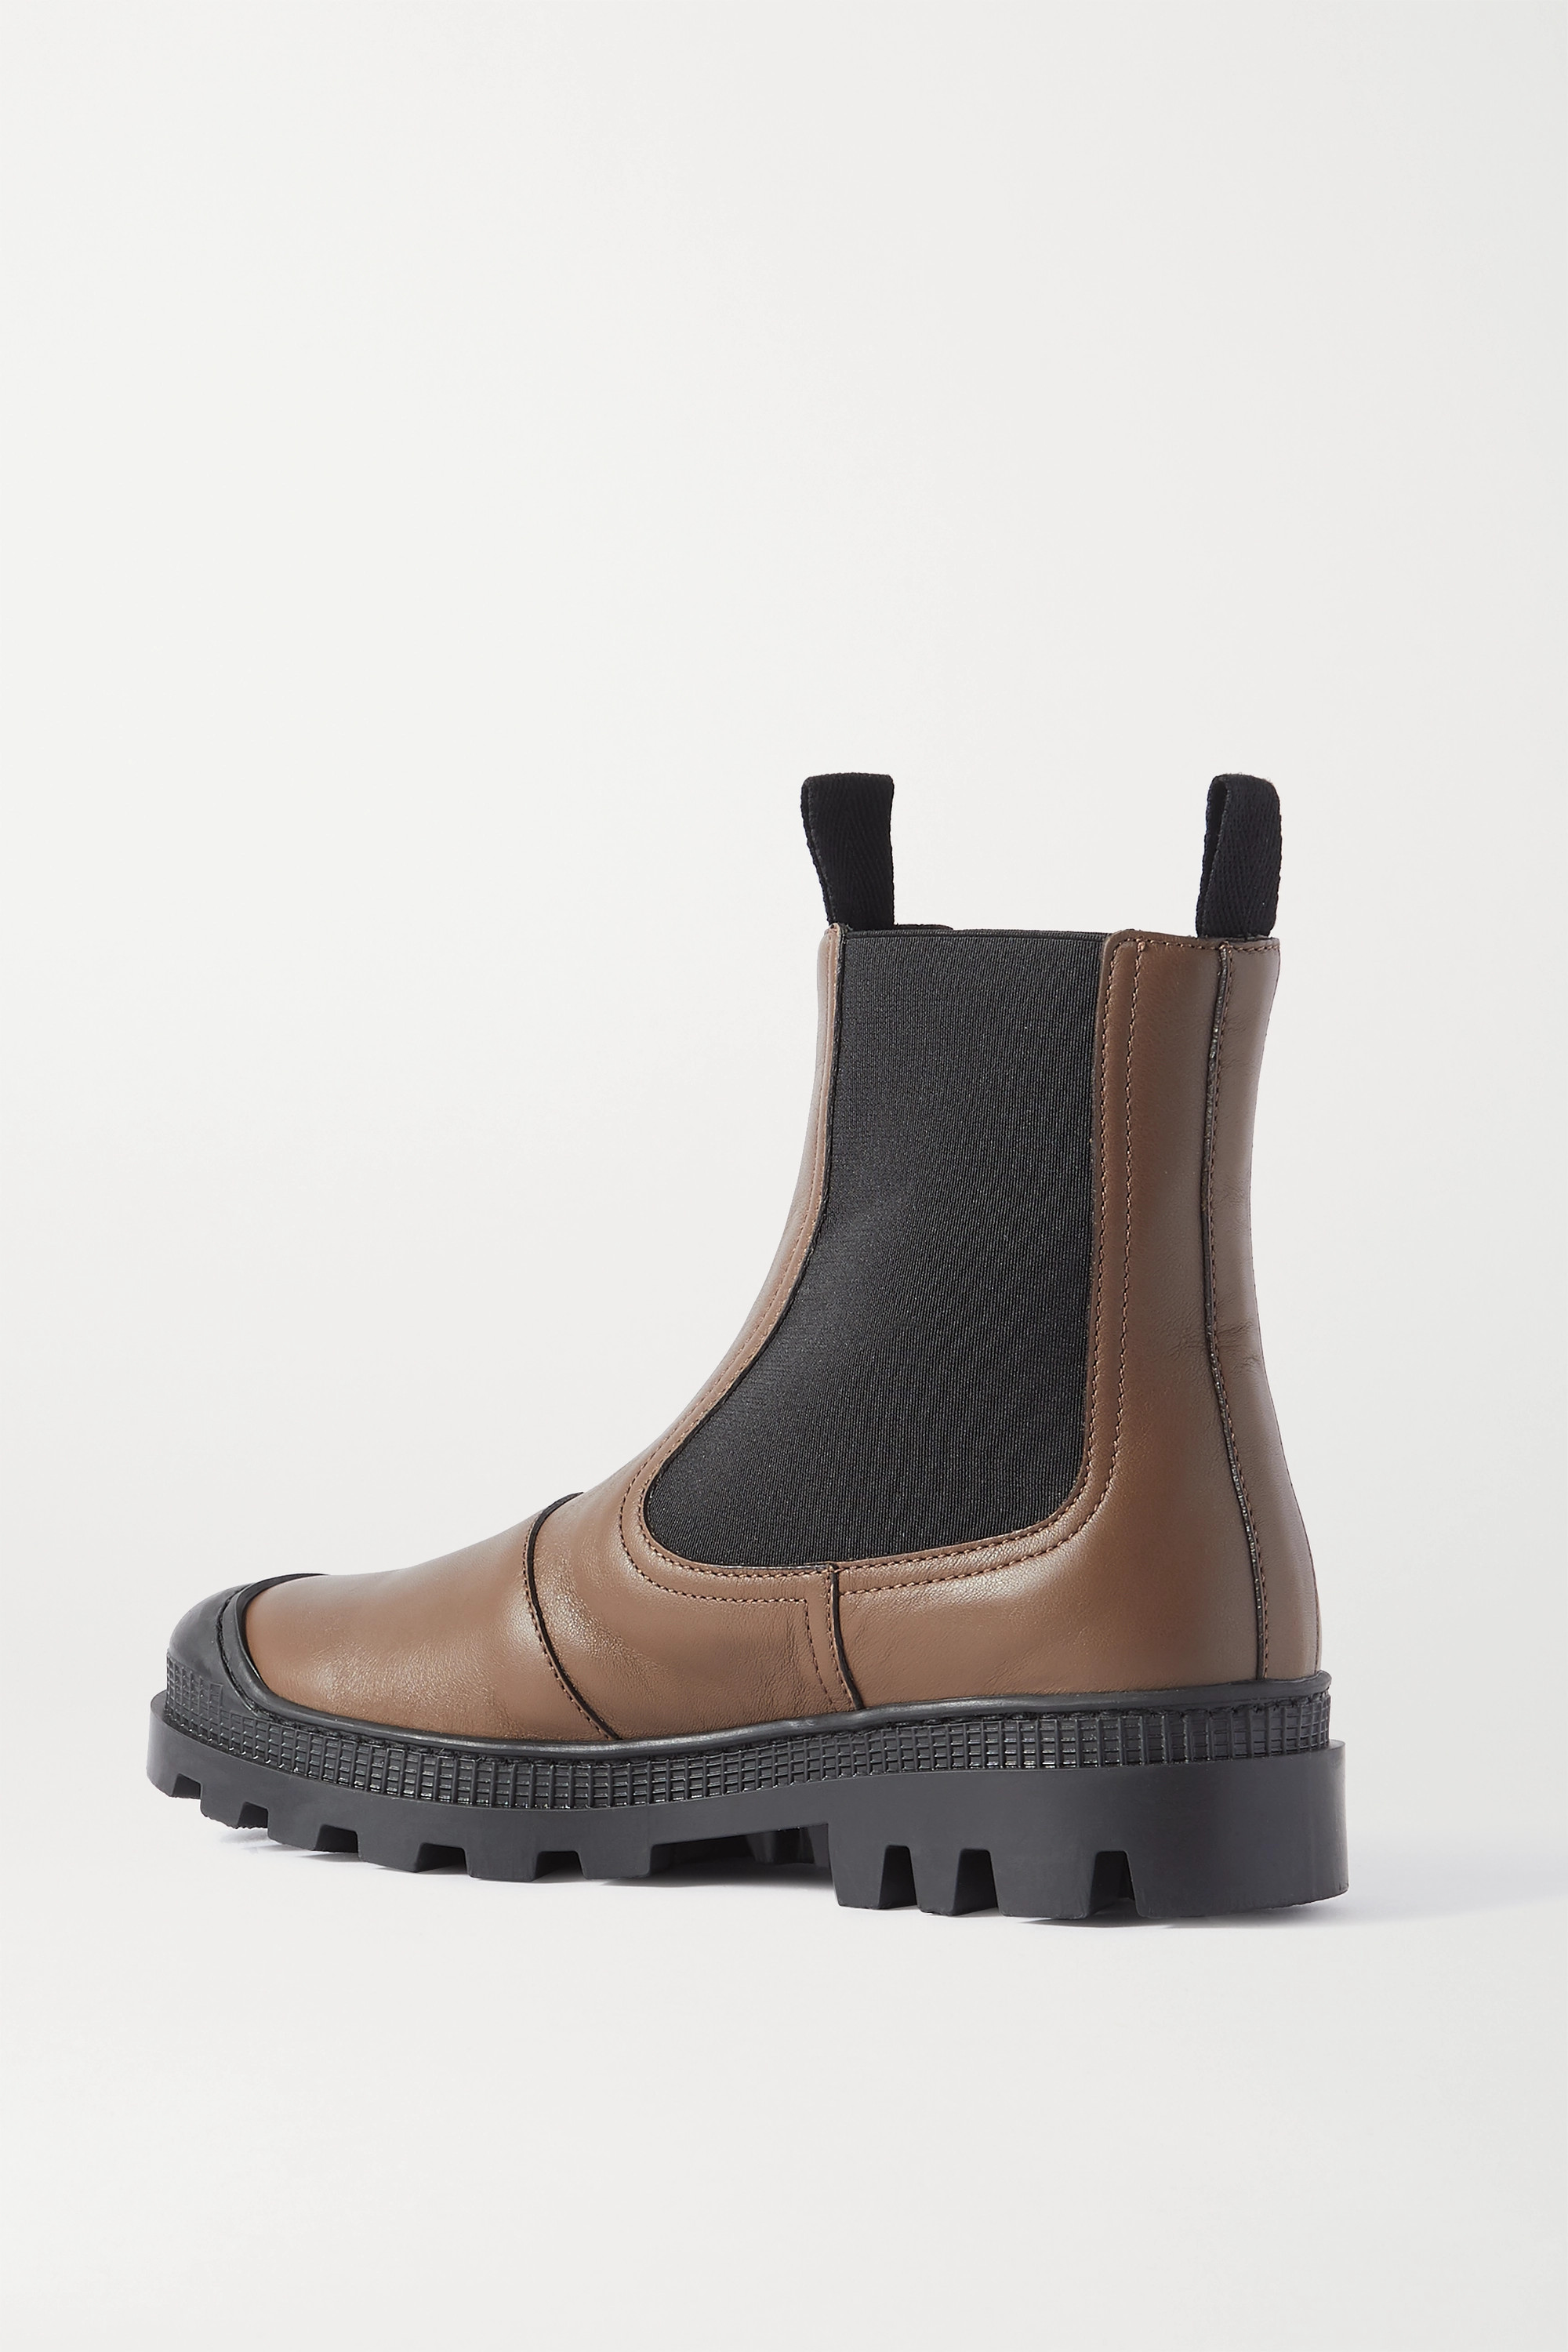 Loewe Rubber-trimmed leather Chelsea boots